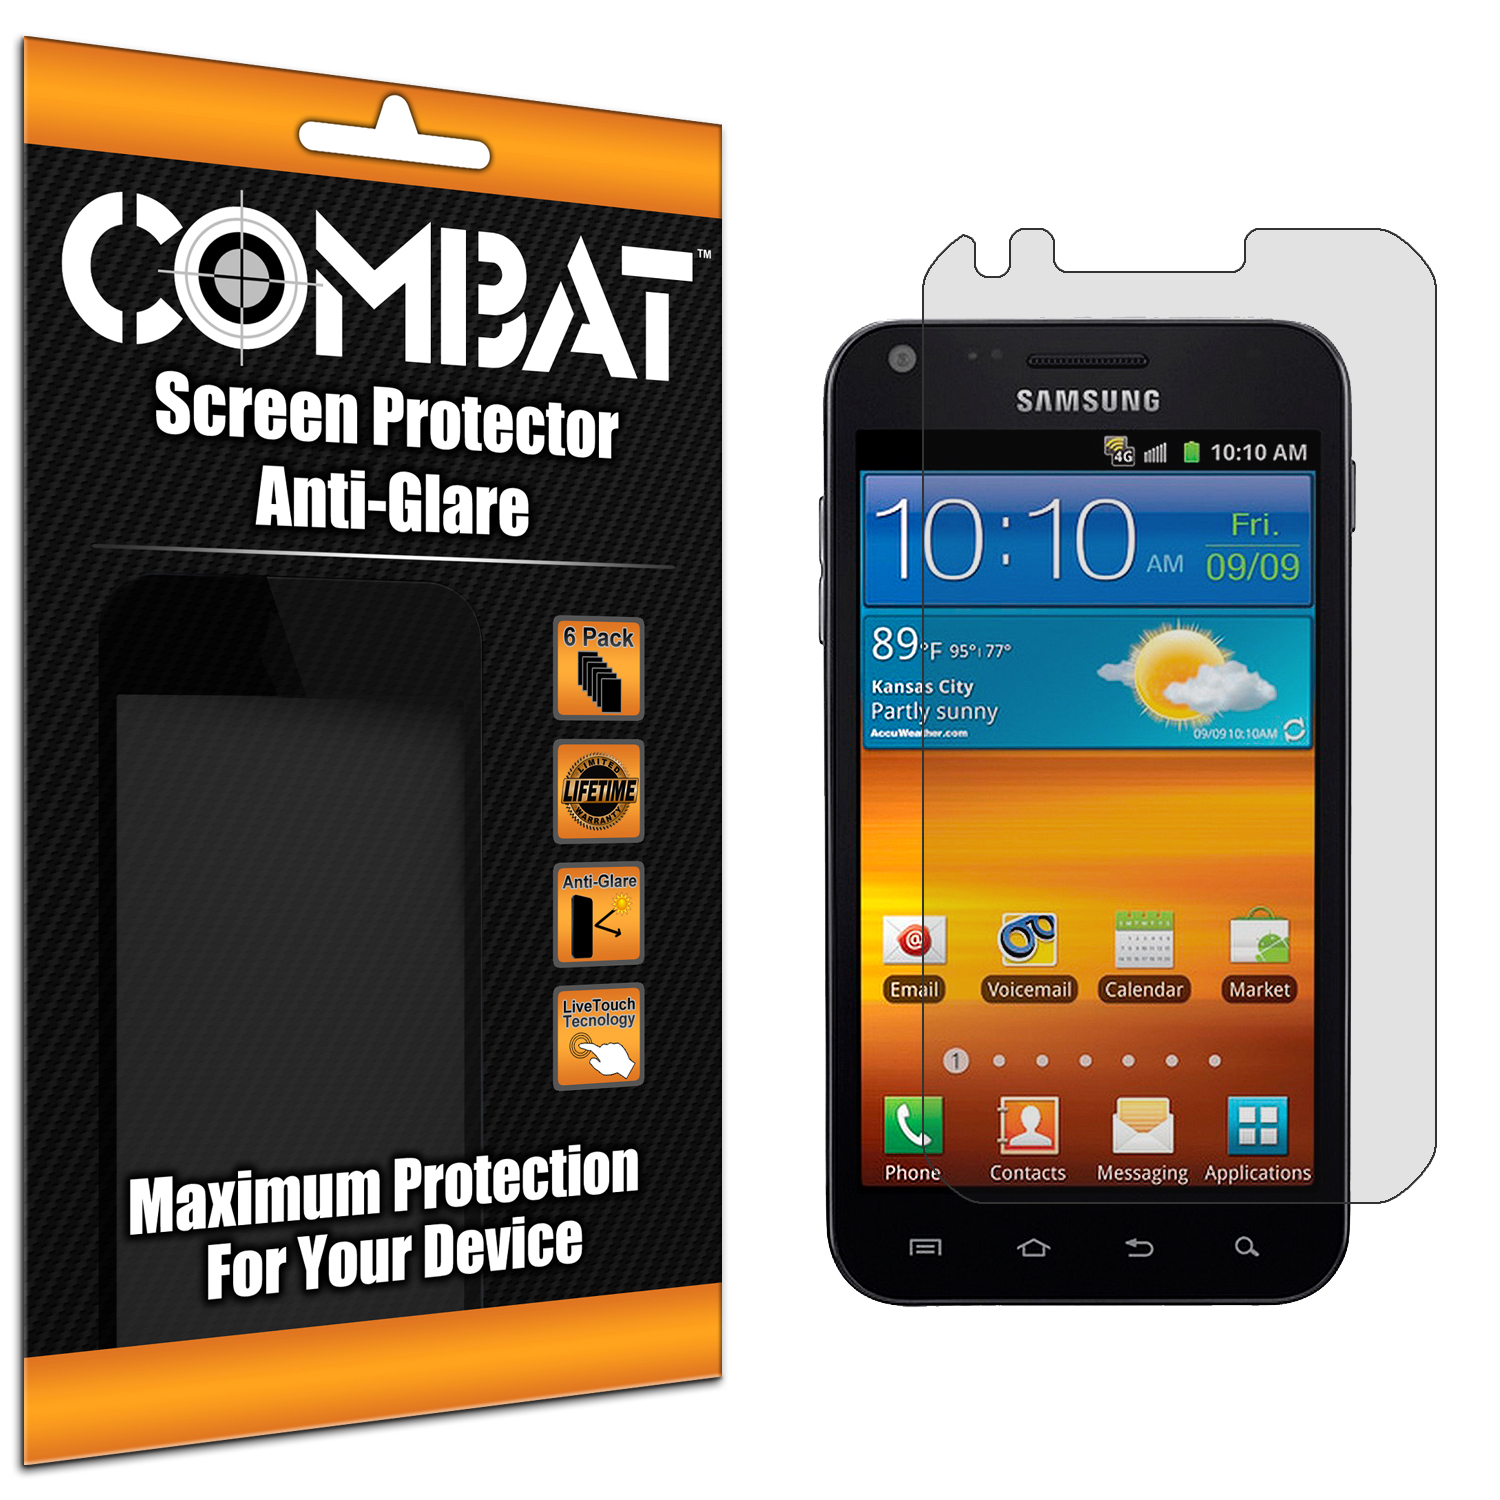 Samsung Epic Touch 4G D710 Sprint Galaxy S2 Combat 6 Pack Anti-Glare Matte Screen Protector